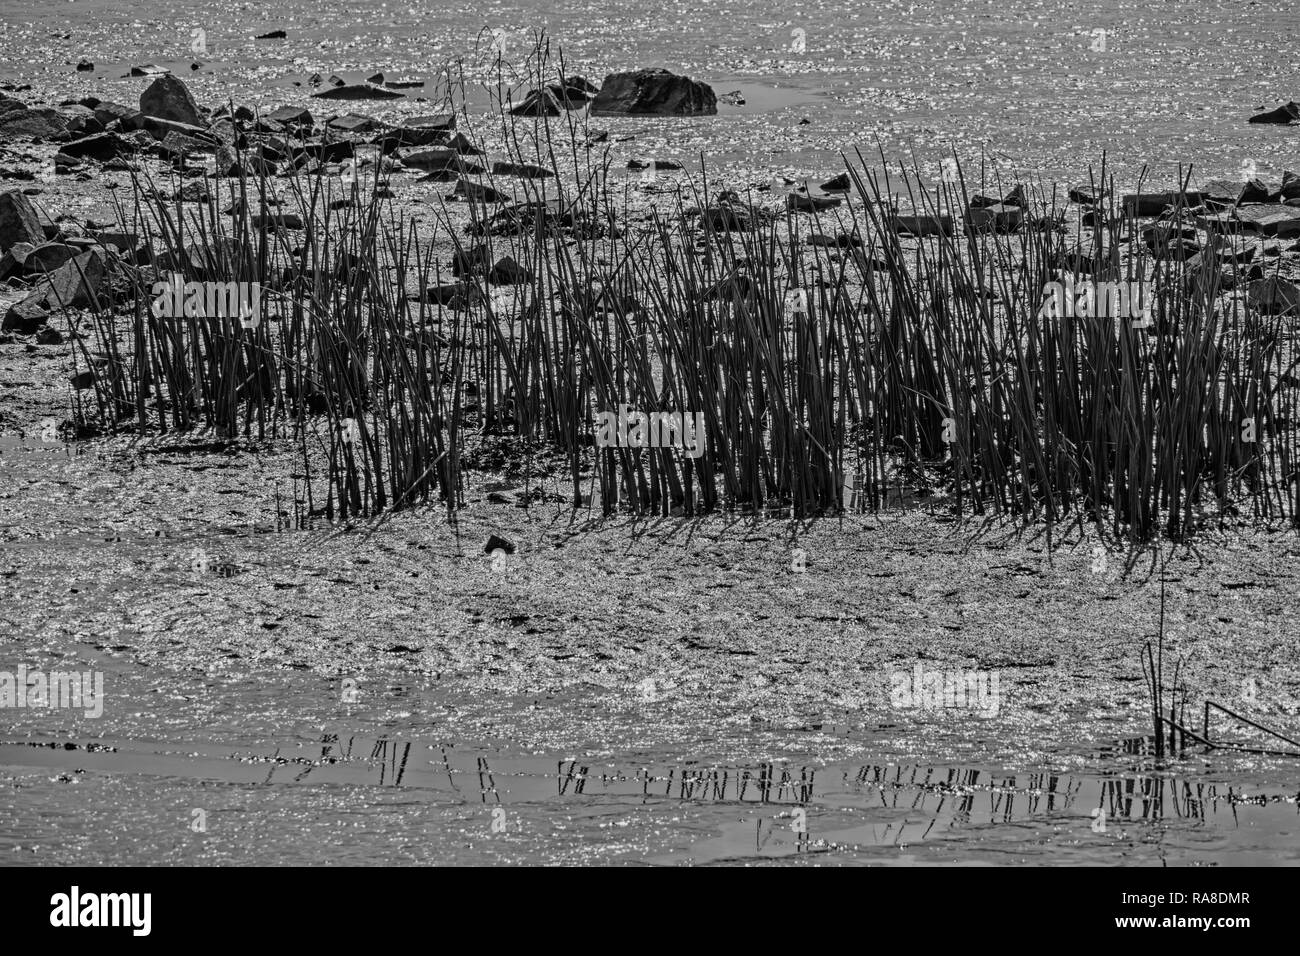 abstract image of plants and stones in mudflats - Stock Image